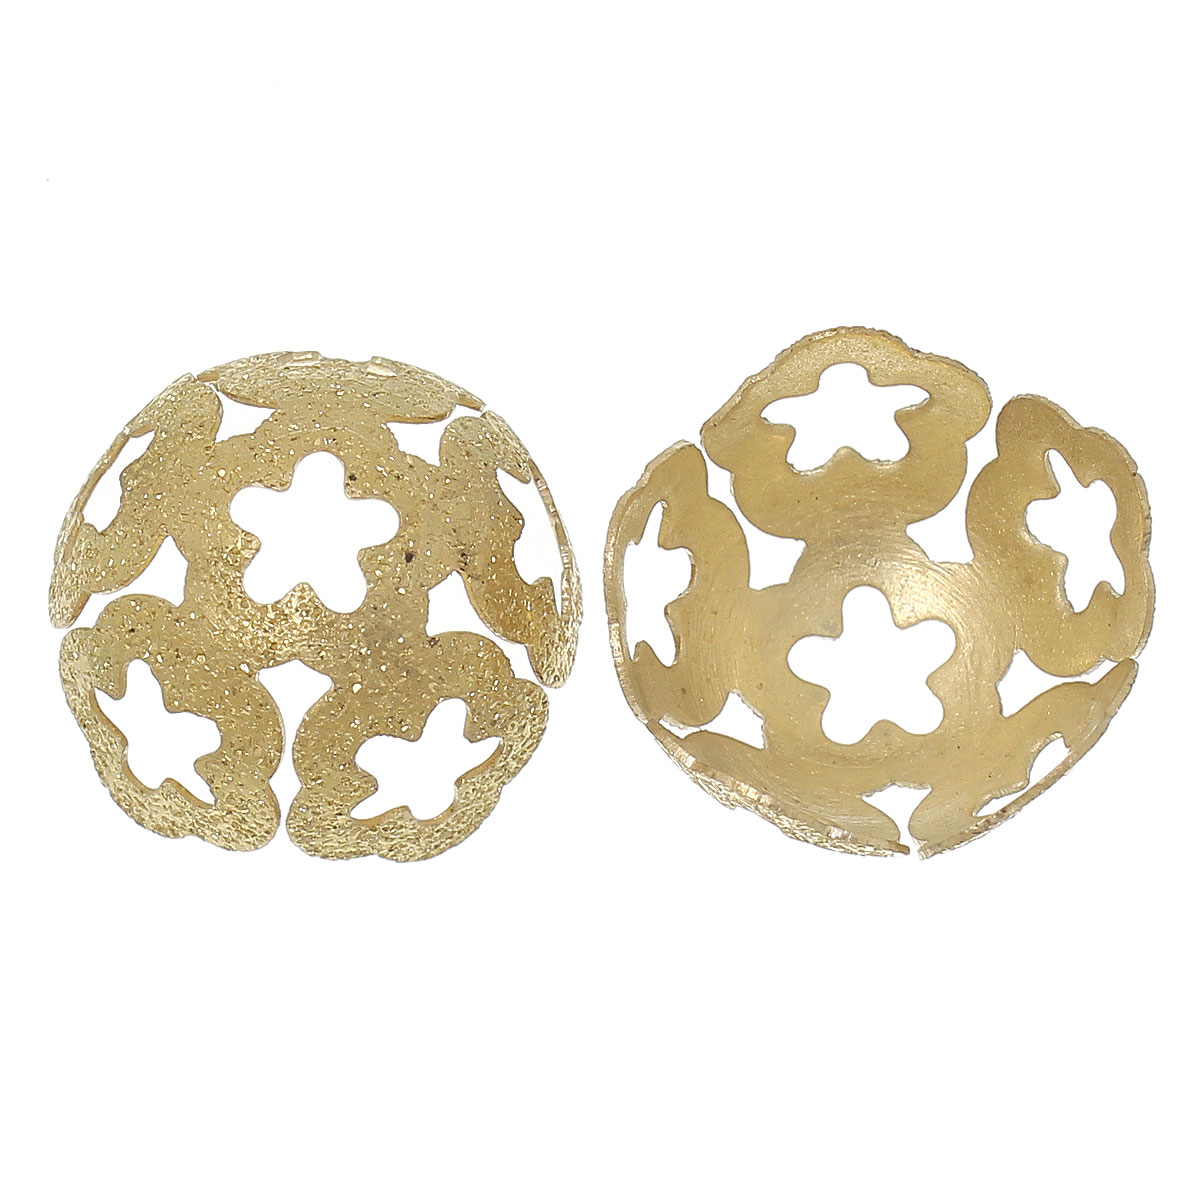 DoreenBeads Brass Beads Caps Findings Brass Tone Blank(Fits 16mm Beads)Flower Hollow 18mm(6/8)x 17mm(5/8),30 PCs 2015 new